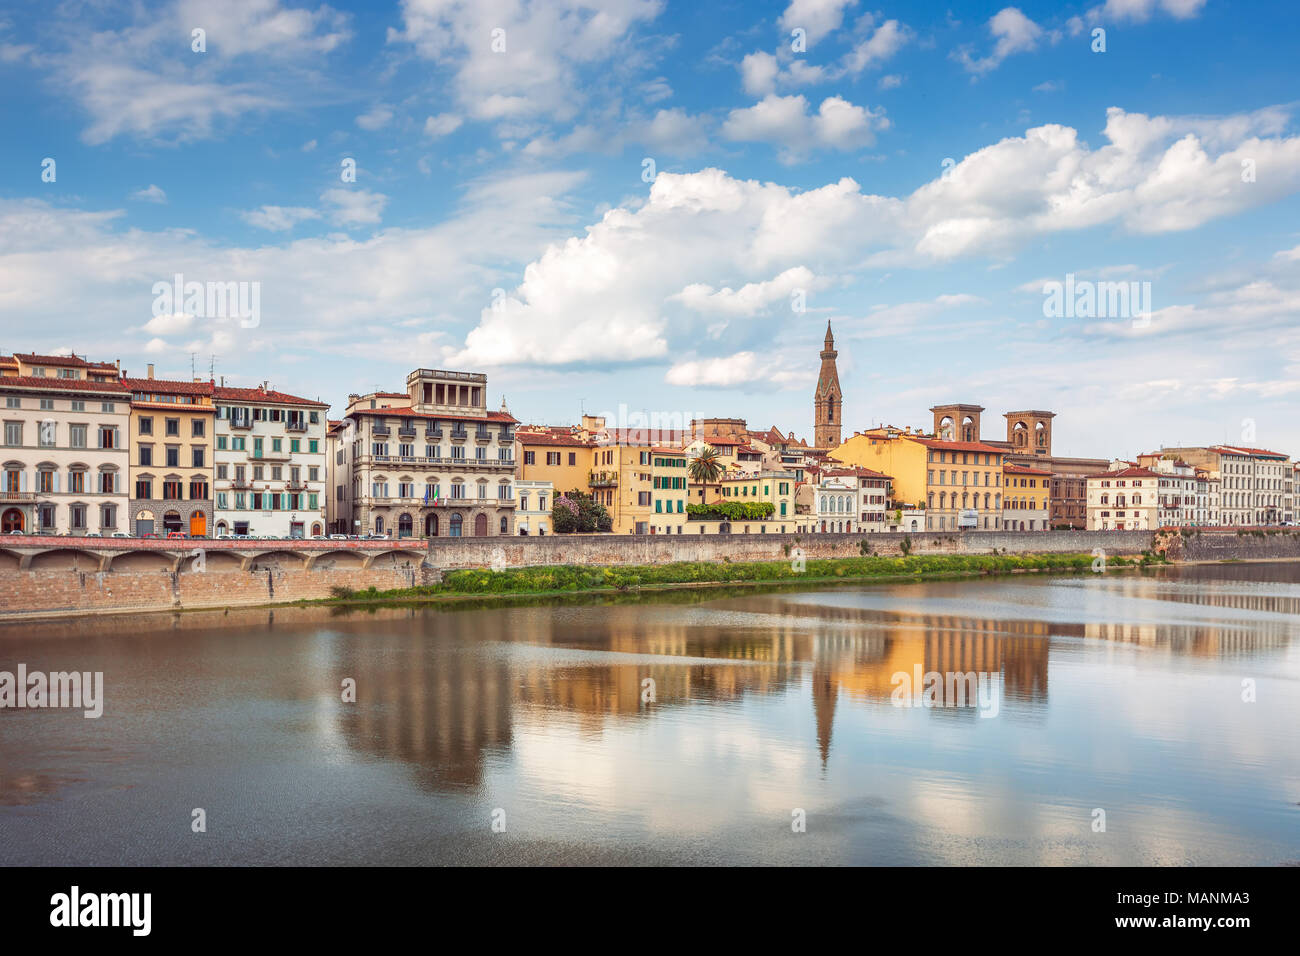 View of Ponte Vecchio with reflections in Arno River, Florence, Italy - Stock Image